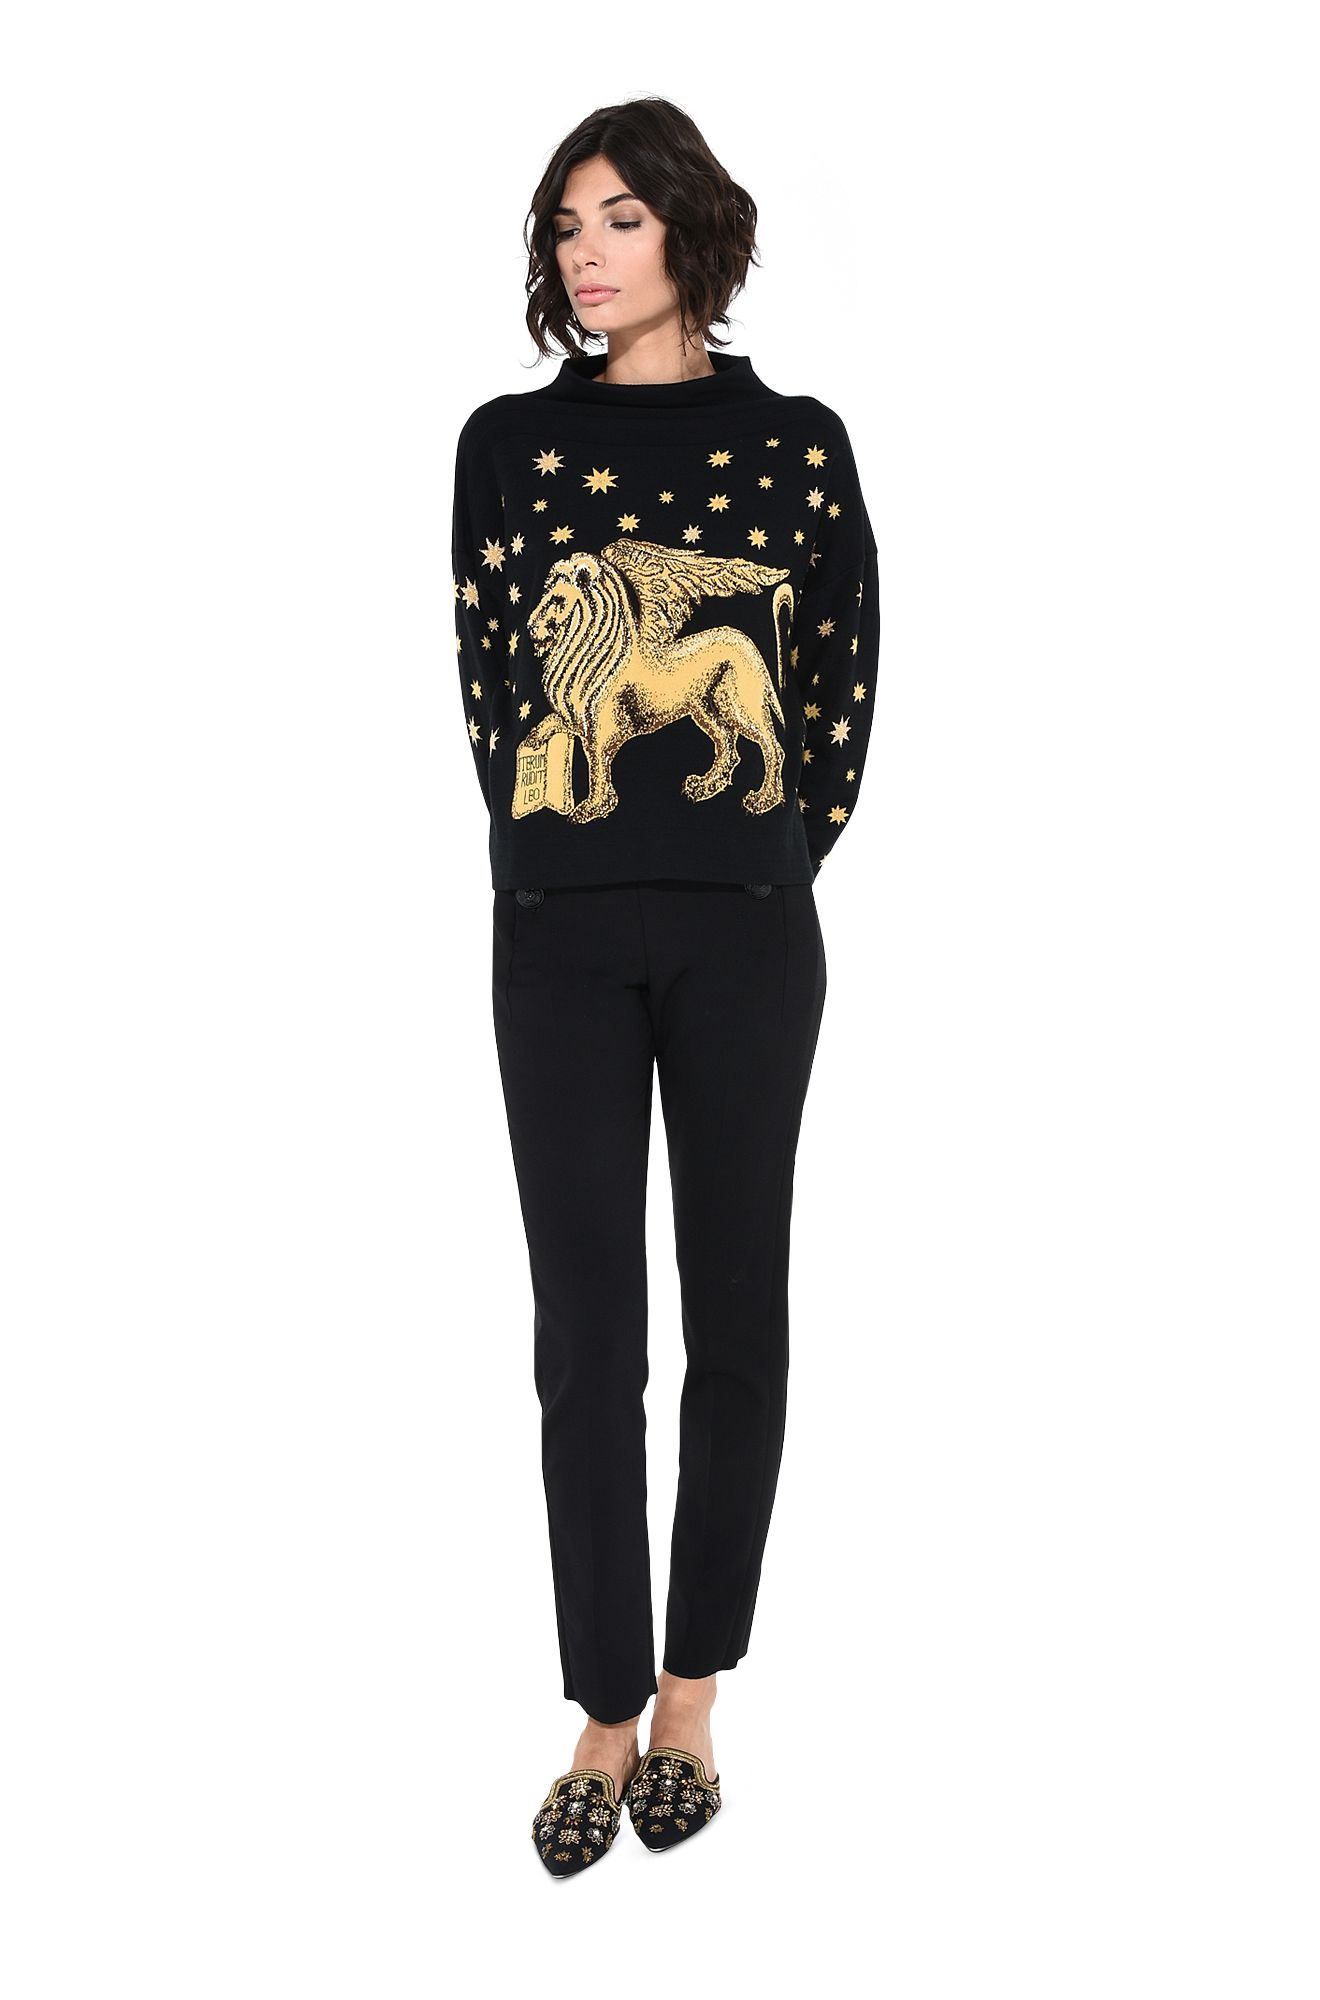 Blue sweater with winged lion